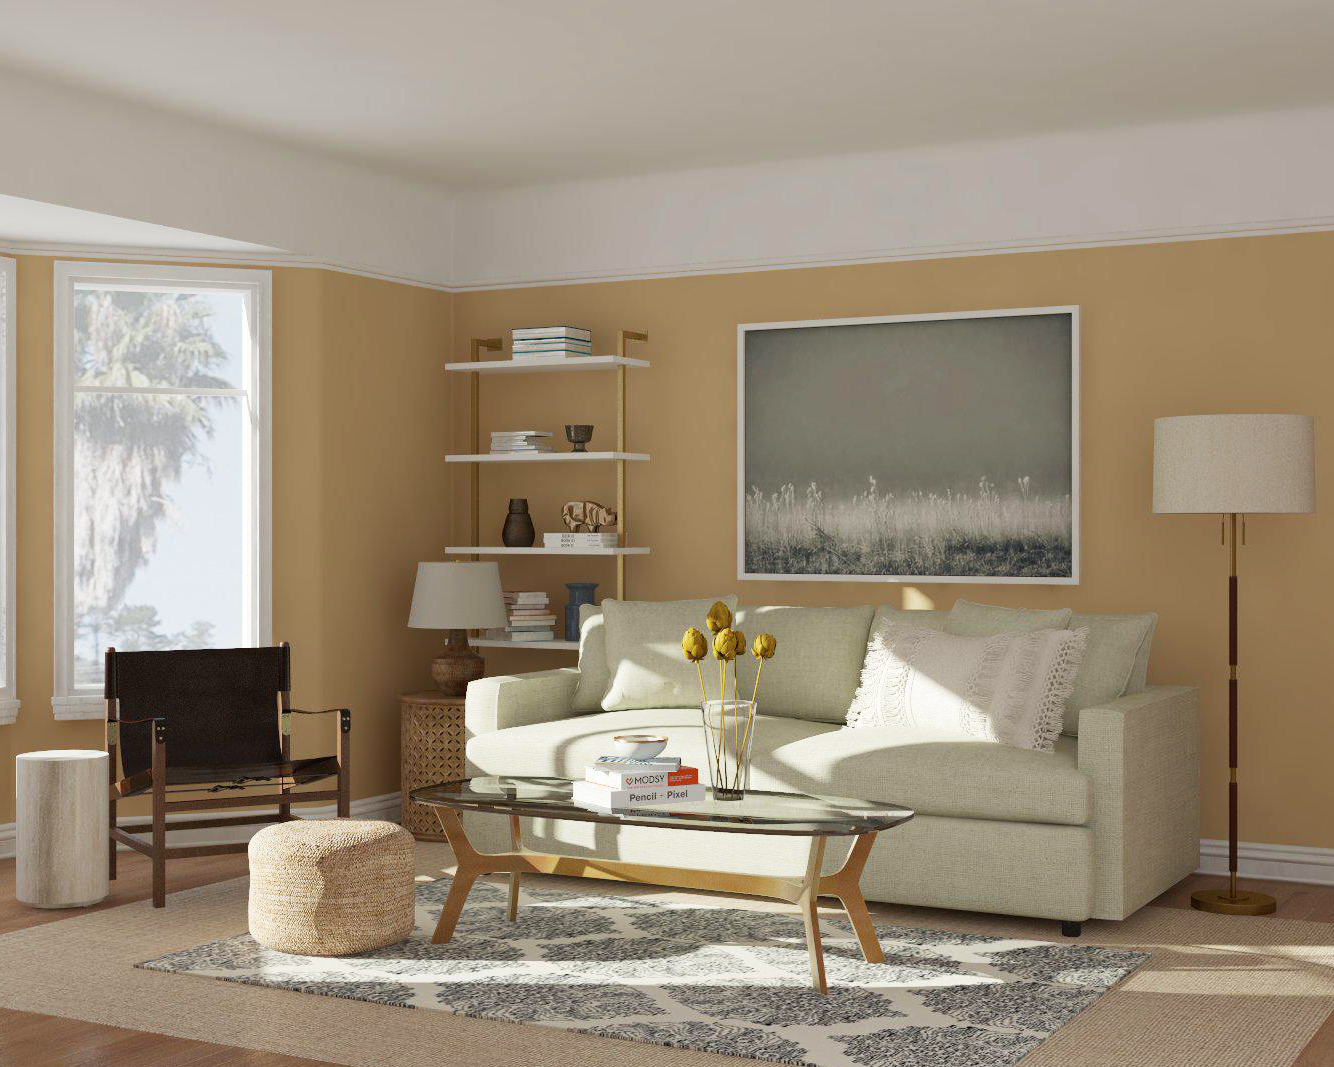 Transform Any Space With These Paint Color Ideas